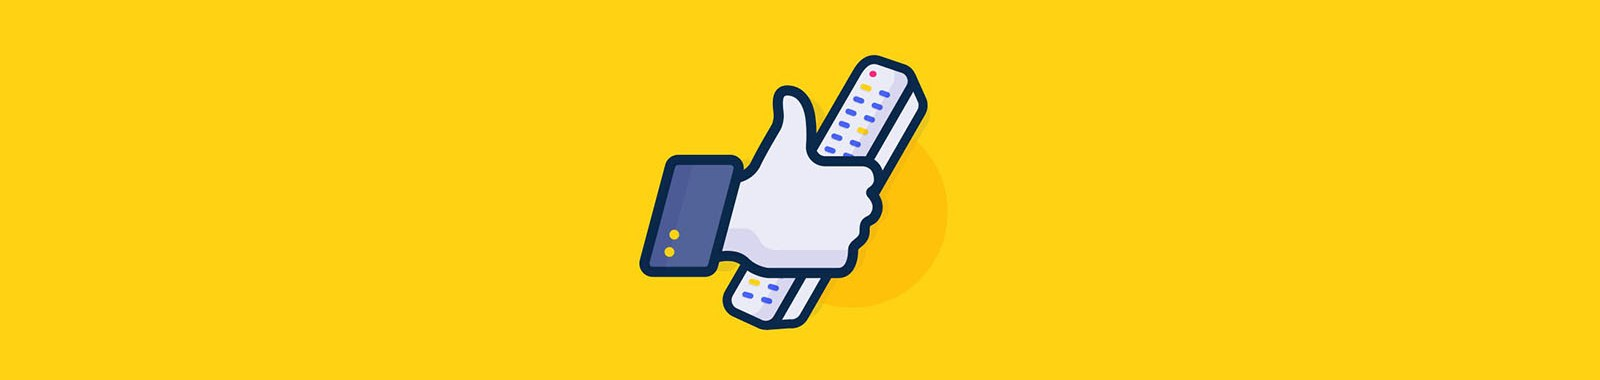 facebook_remote2-eye